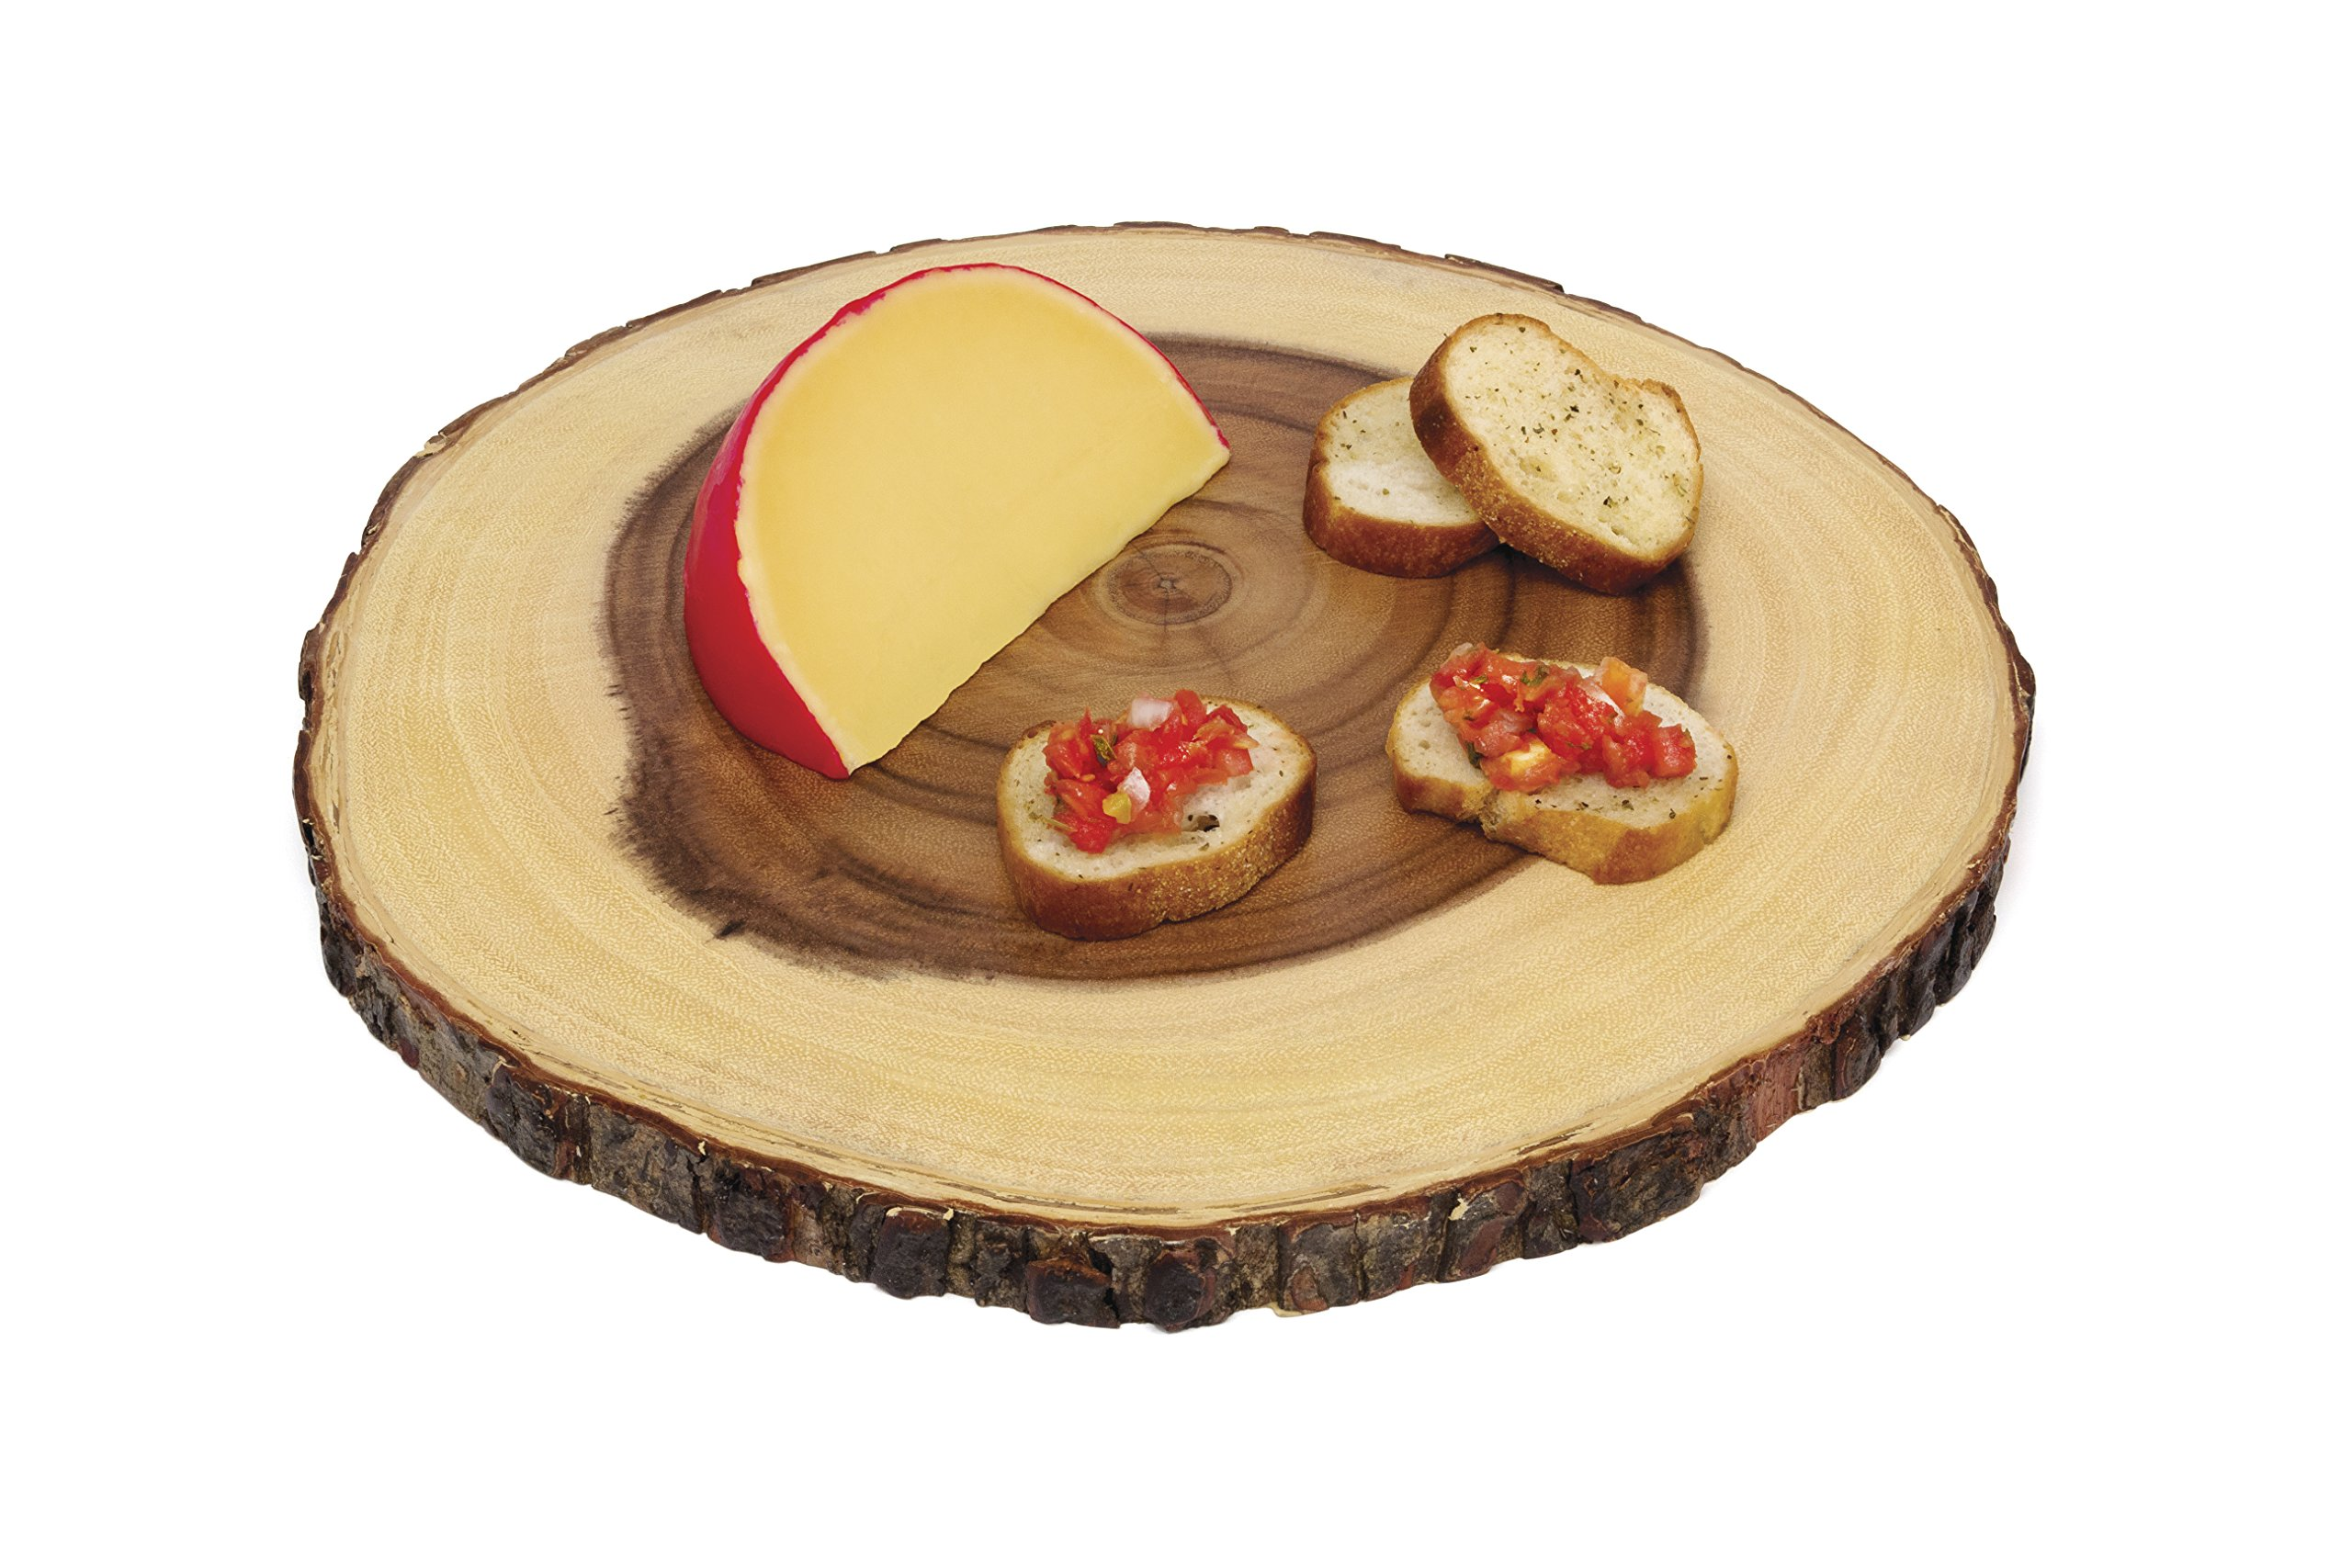 Lipper International 1040 Acacia Wood Slab Serving Board With Bark for Cheese, Crackers, and Hors D'oeuvres, Set of 3, Assorted Sizes by Lipper International (Image #11)